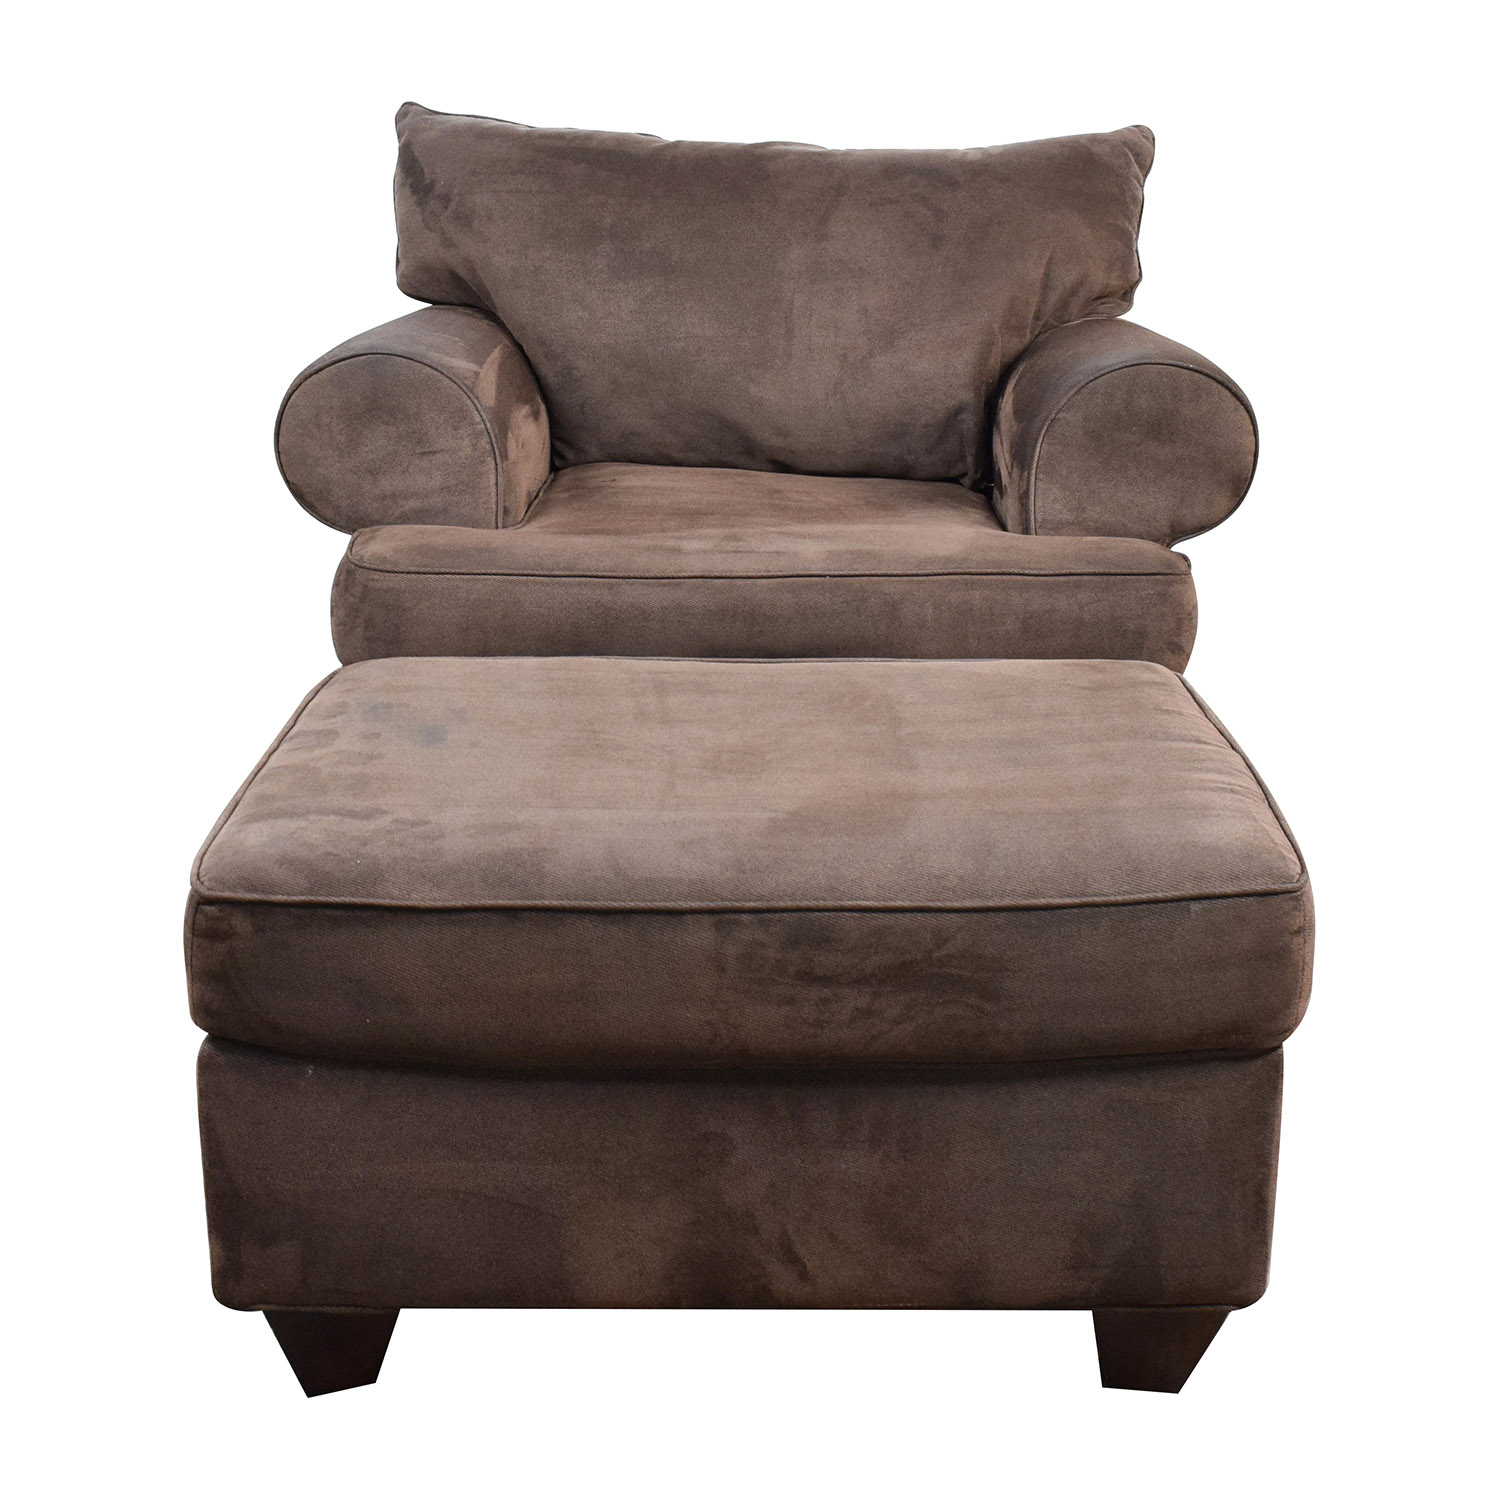 Sofa Chair And Ottoman Bisenti Chair And A Half Ottoman Wayfair Bathroom Tile Thesofa